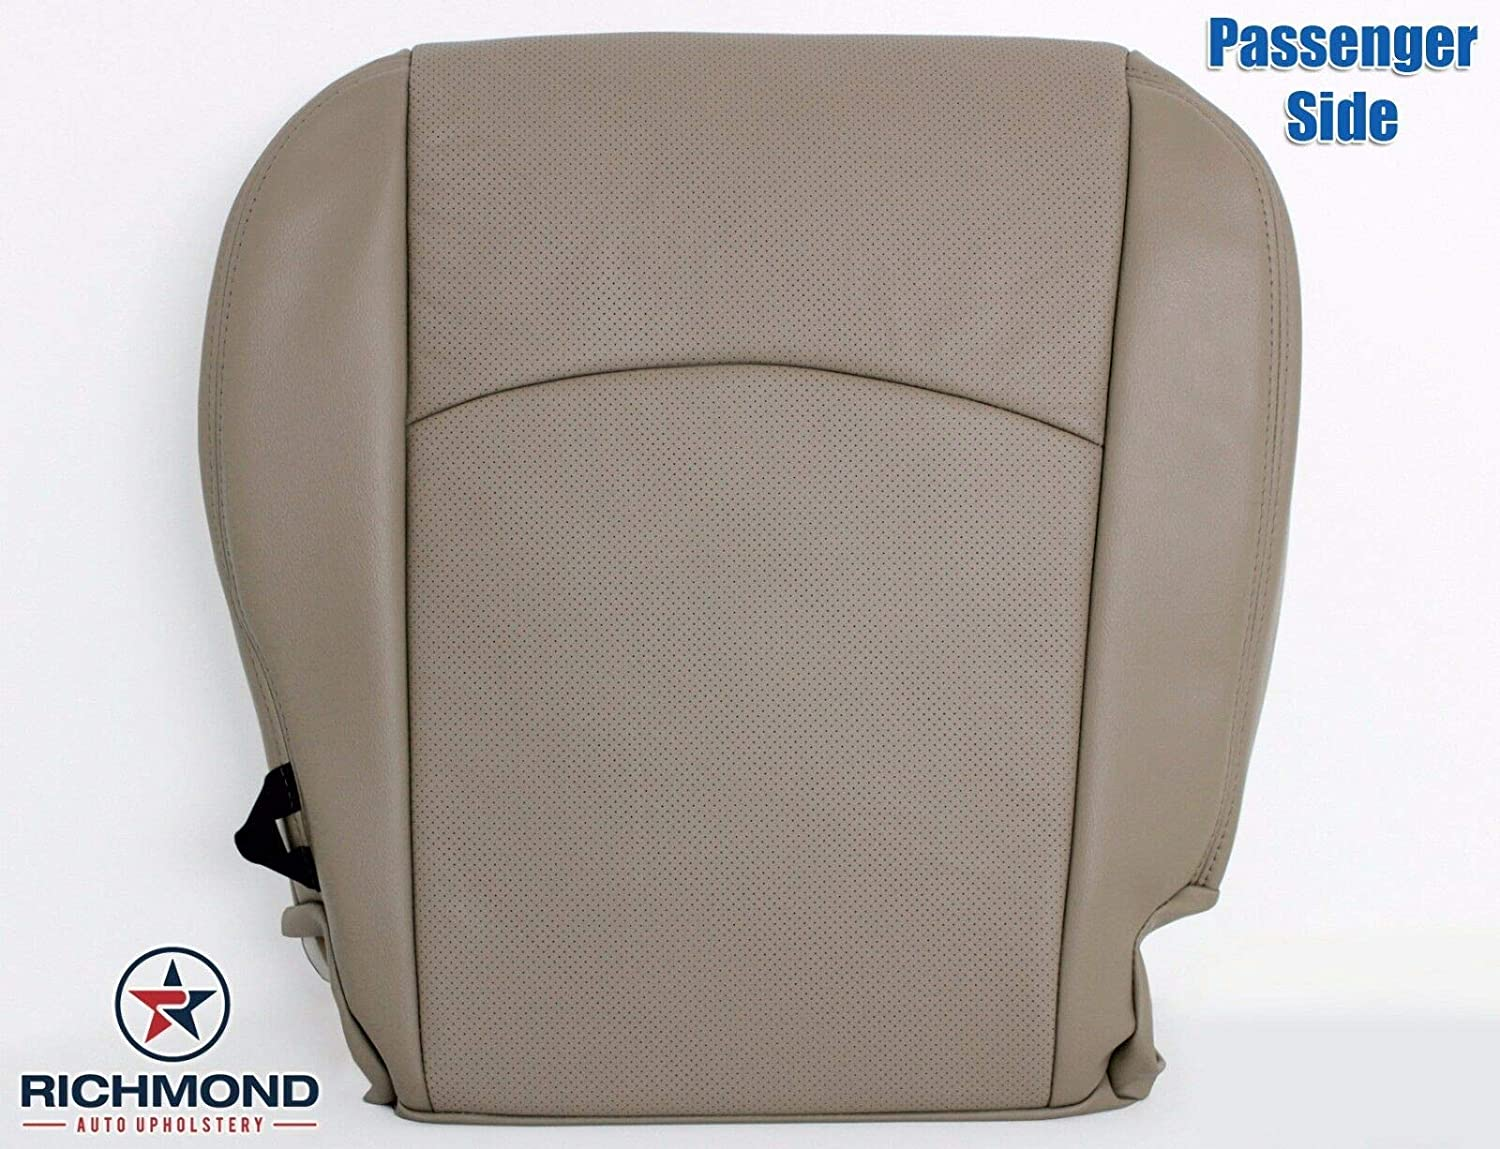 Compatible with 2009-2012 Dodge Ram 1500, 2500, 3500 Passenger Side Bottom Replacement Leather Seat Cover Dark Slate Gray Richmond Auto Upholstery Dark Gray Perforated